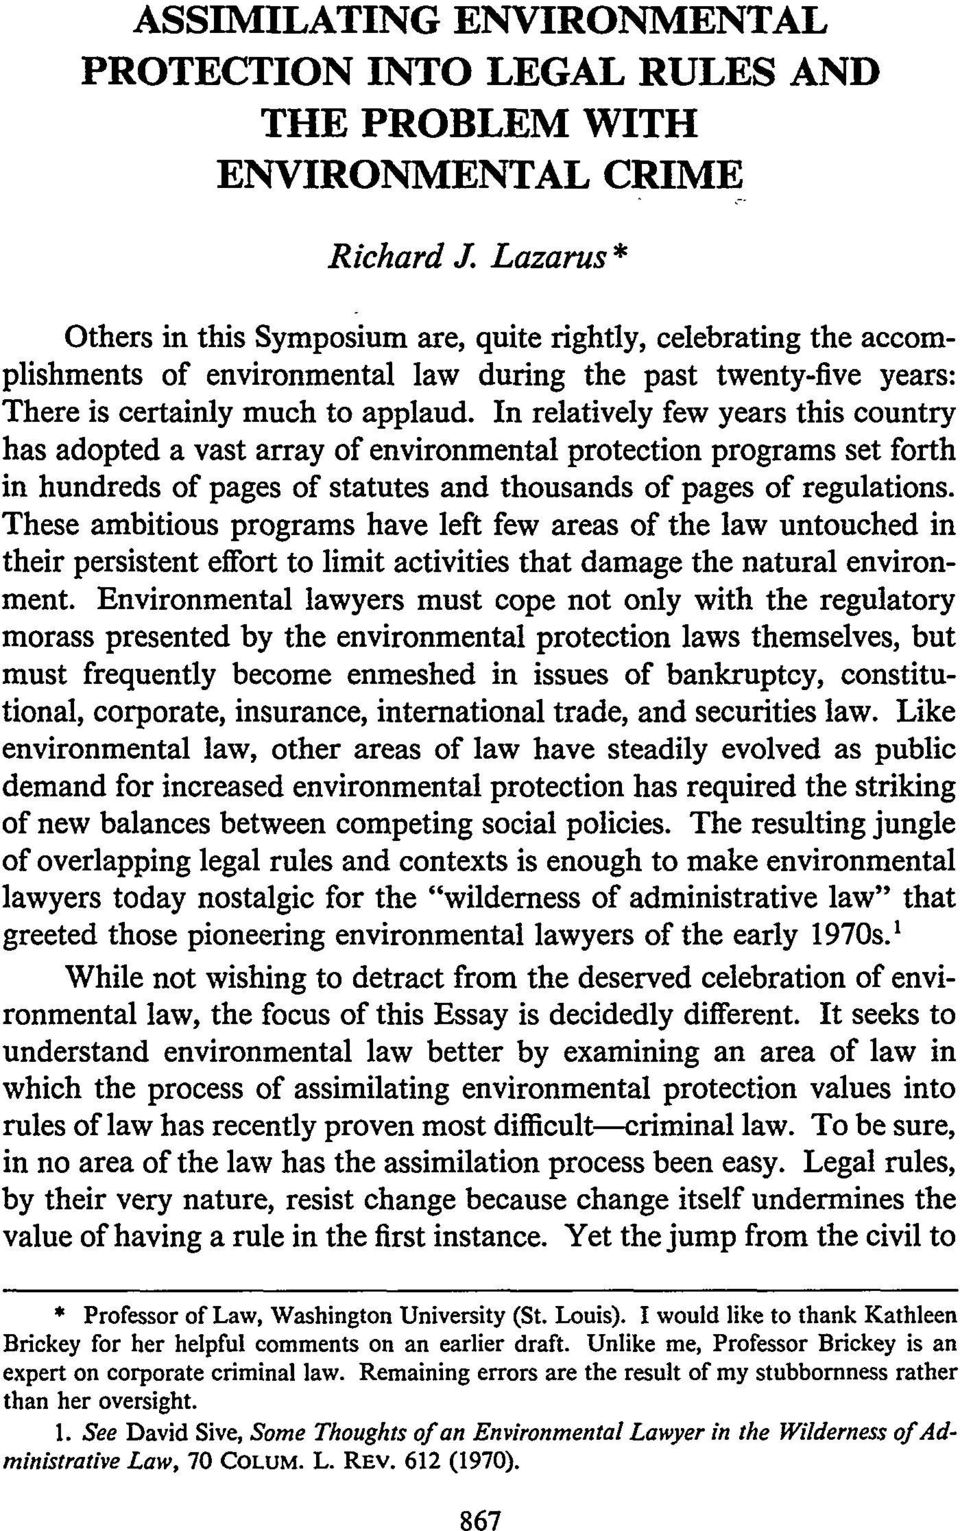 In relatively few years this country has adopted a vast array of environmental protection programs set forth in hundreds of pages of statutes and thousands of pages of regulations.